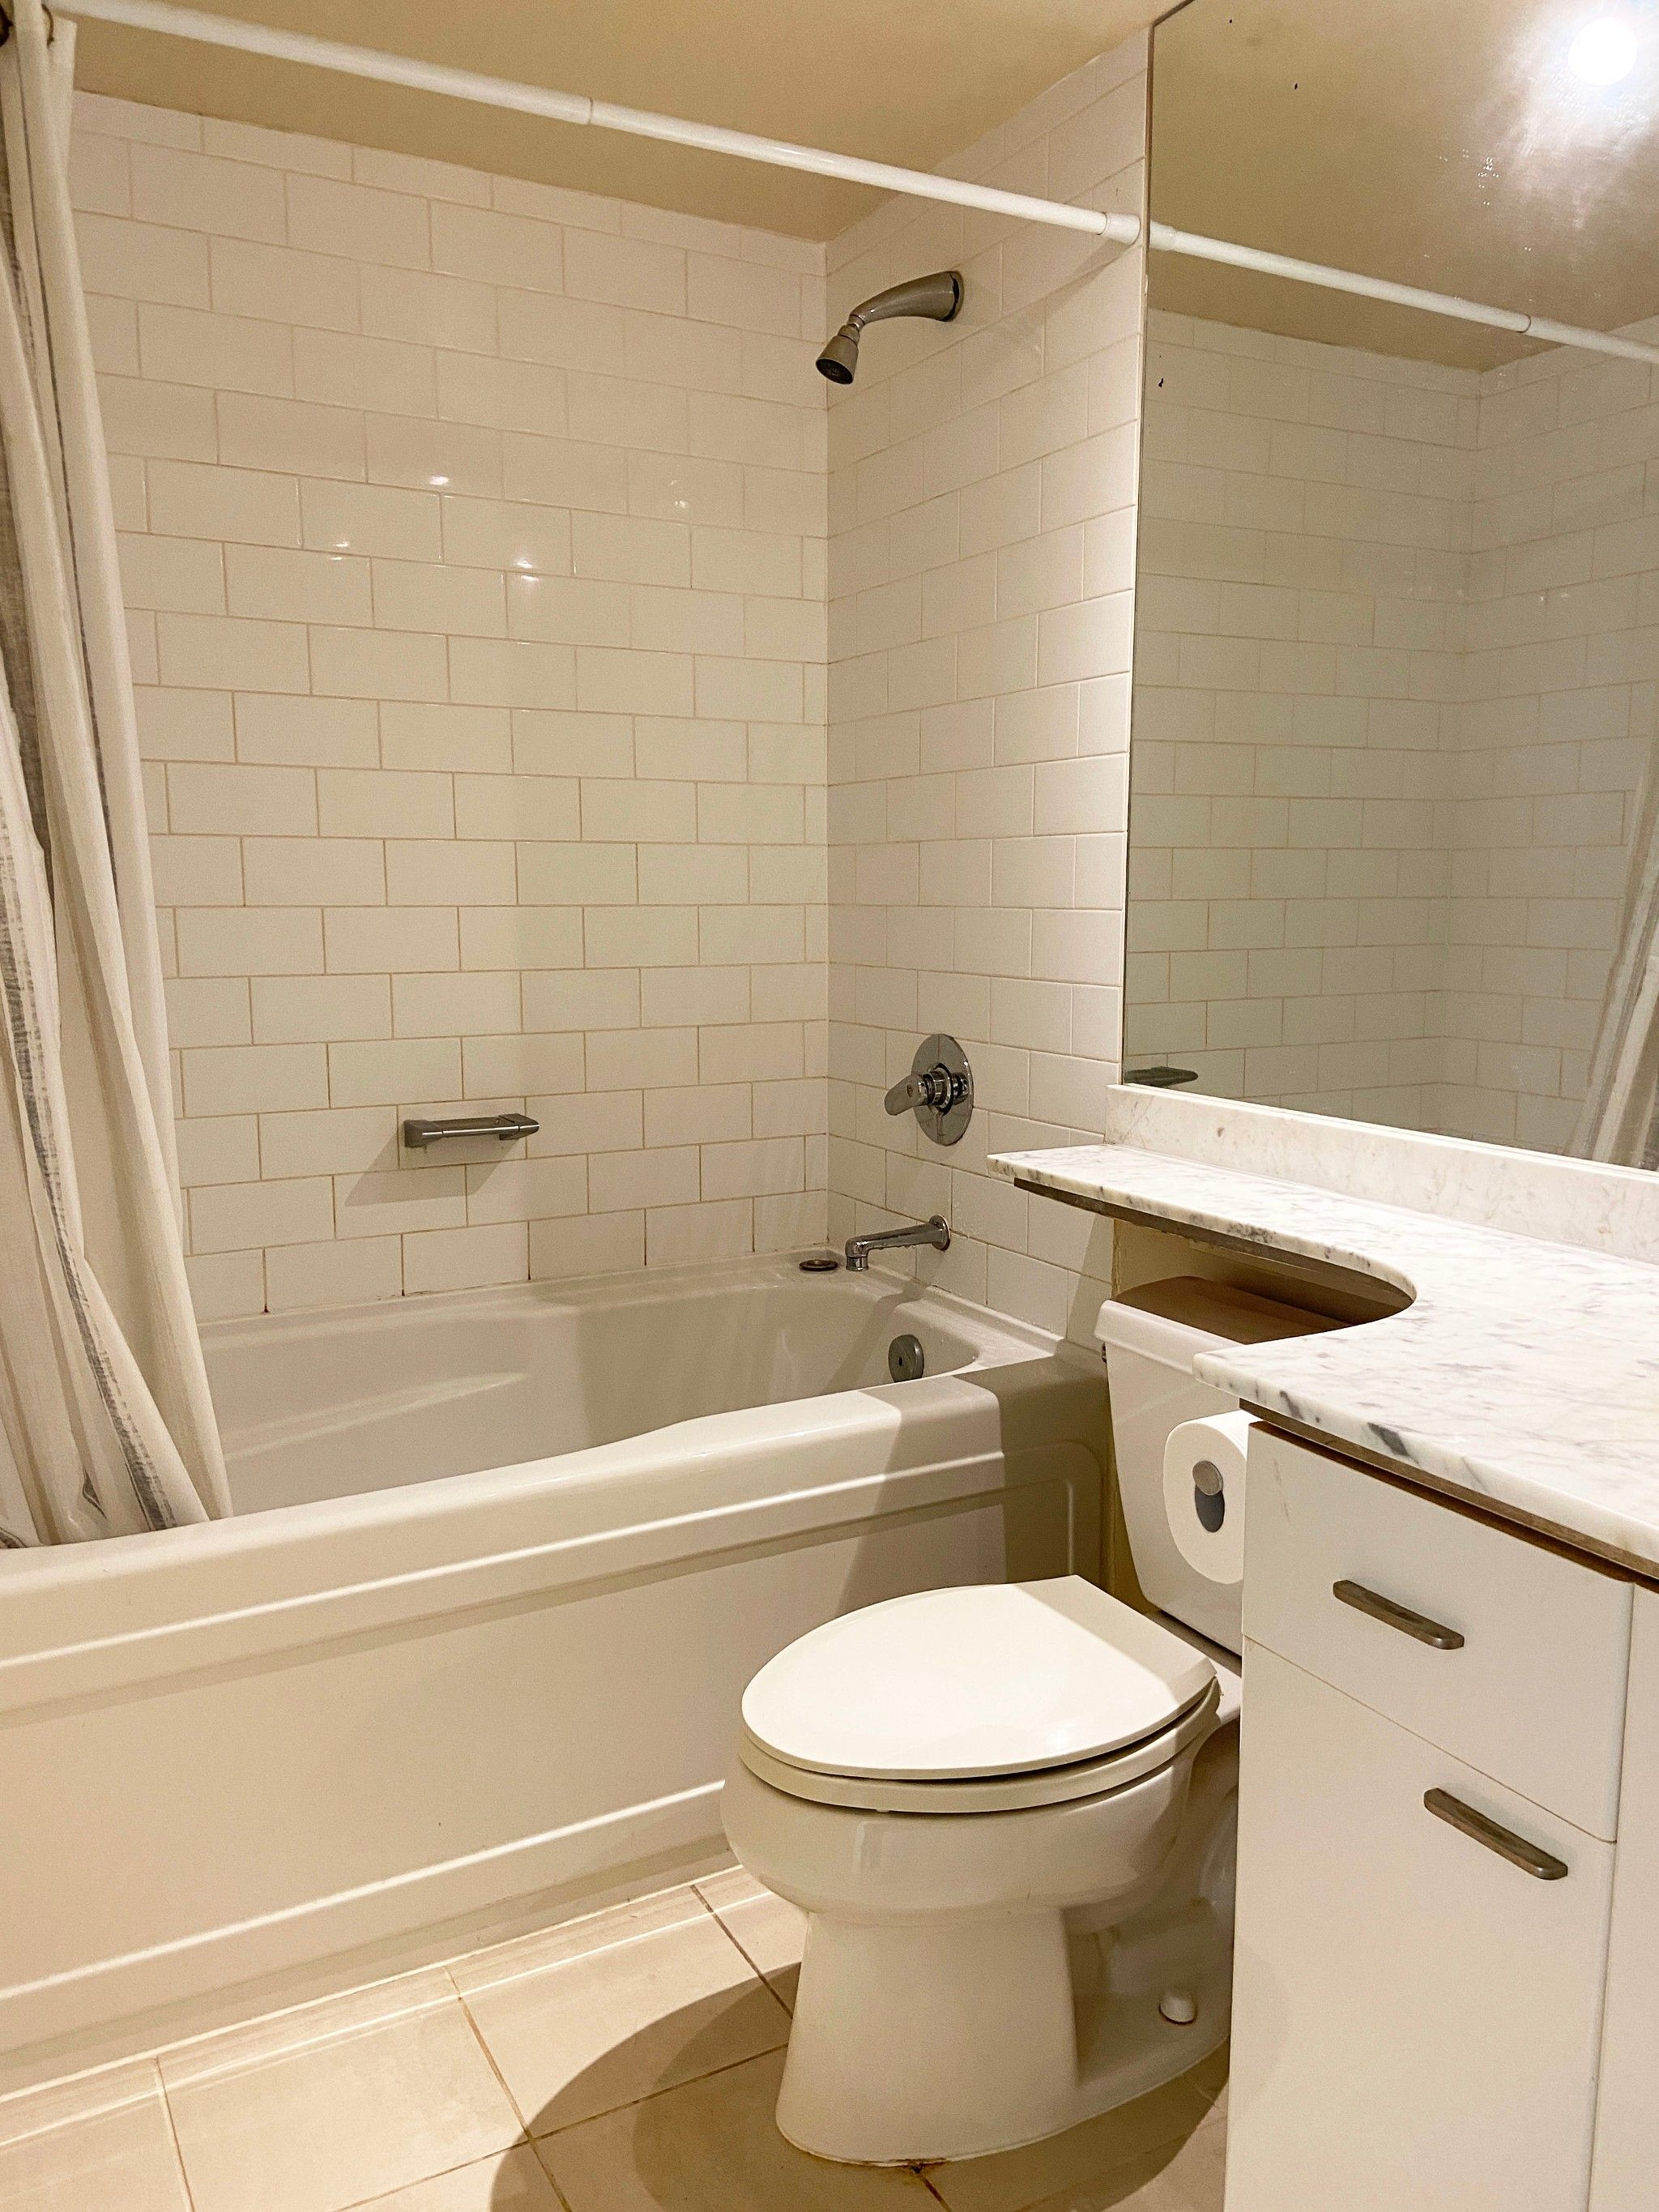 Photo 15: Photos: 1007-1200 W. Georgia St in Vancouver: Coal Harbour Condo for rent (Downtown Vancouver)